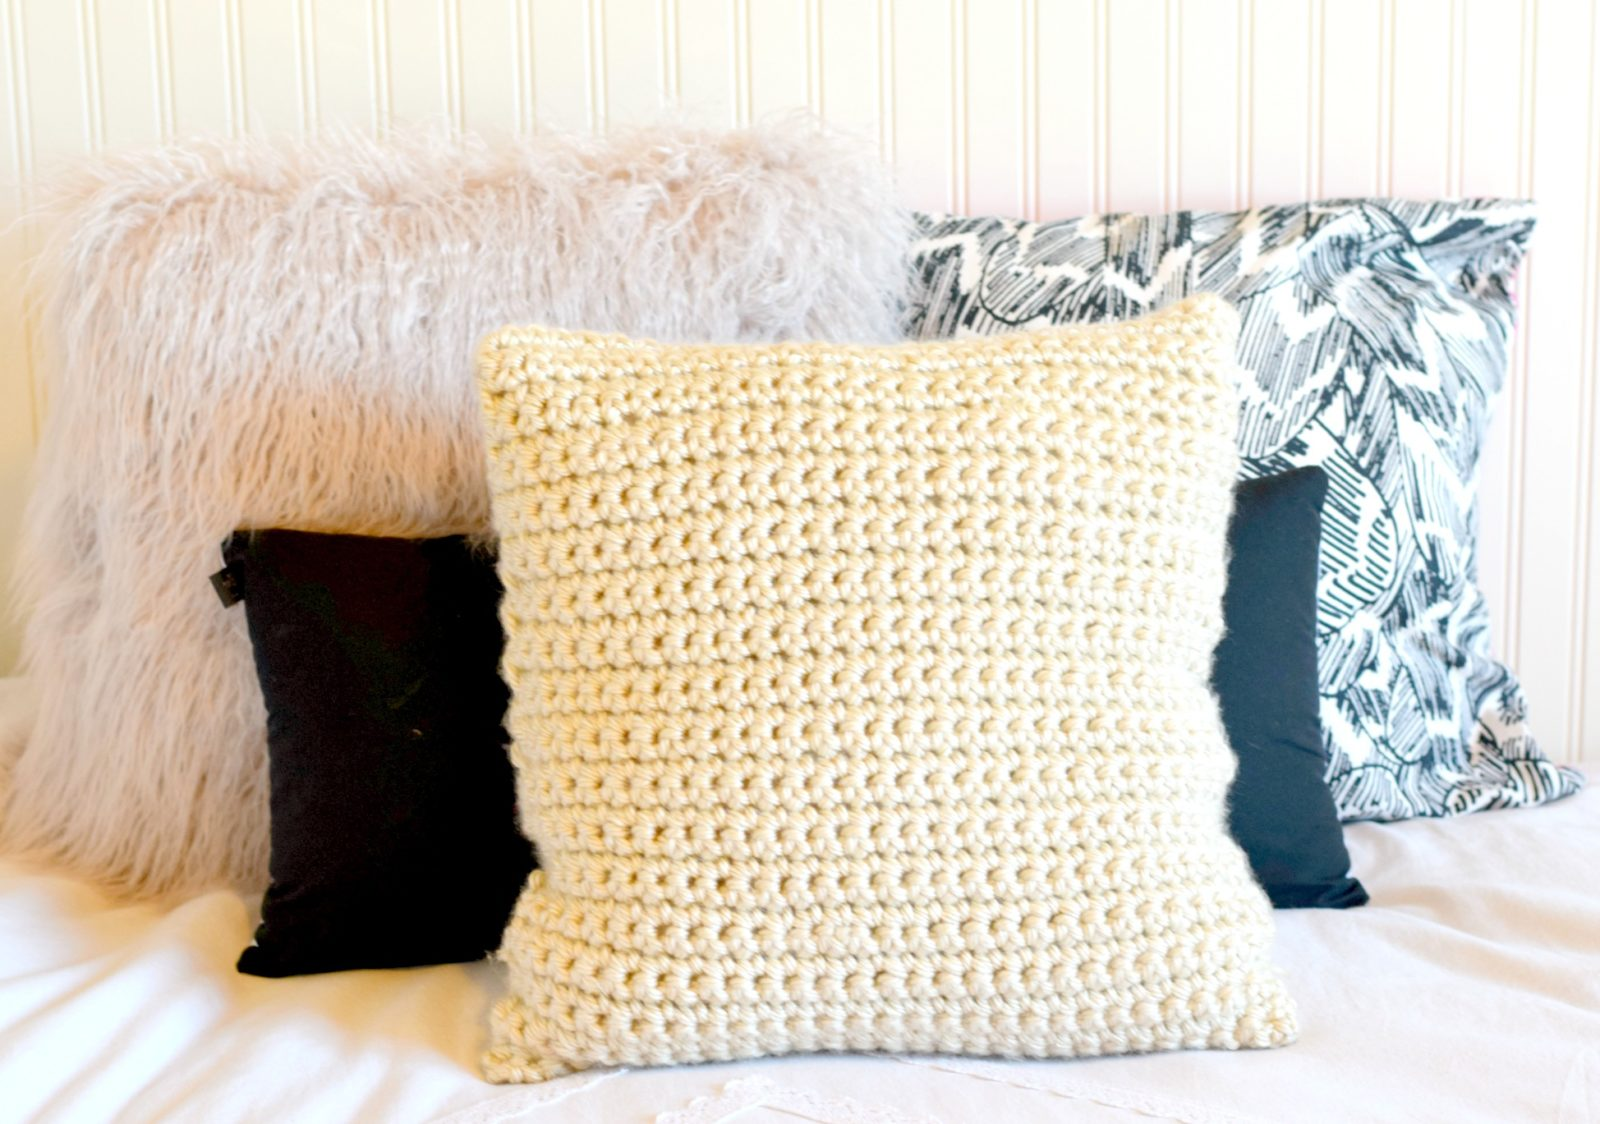 Super Chunky Crochet Pillow Project ? Mama In A Stitch